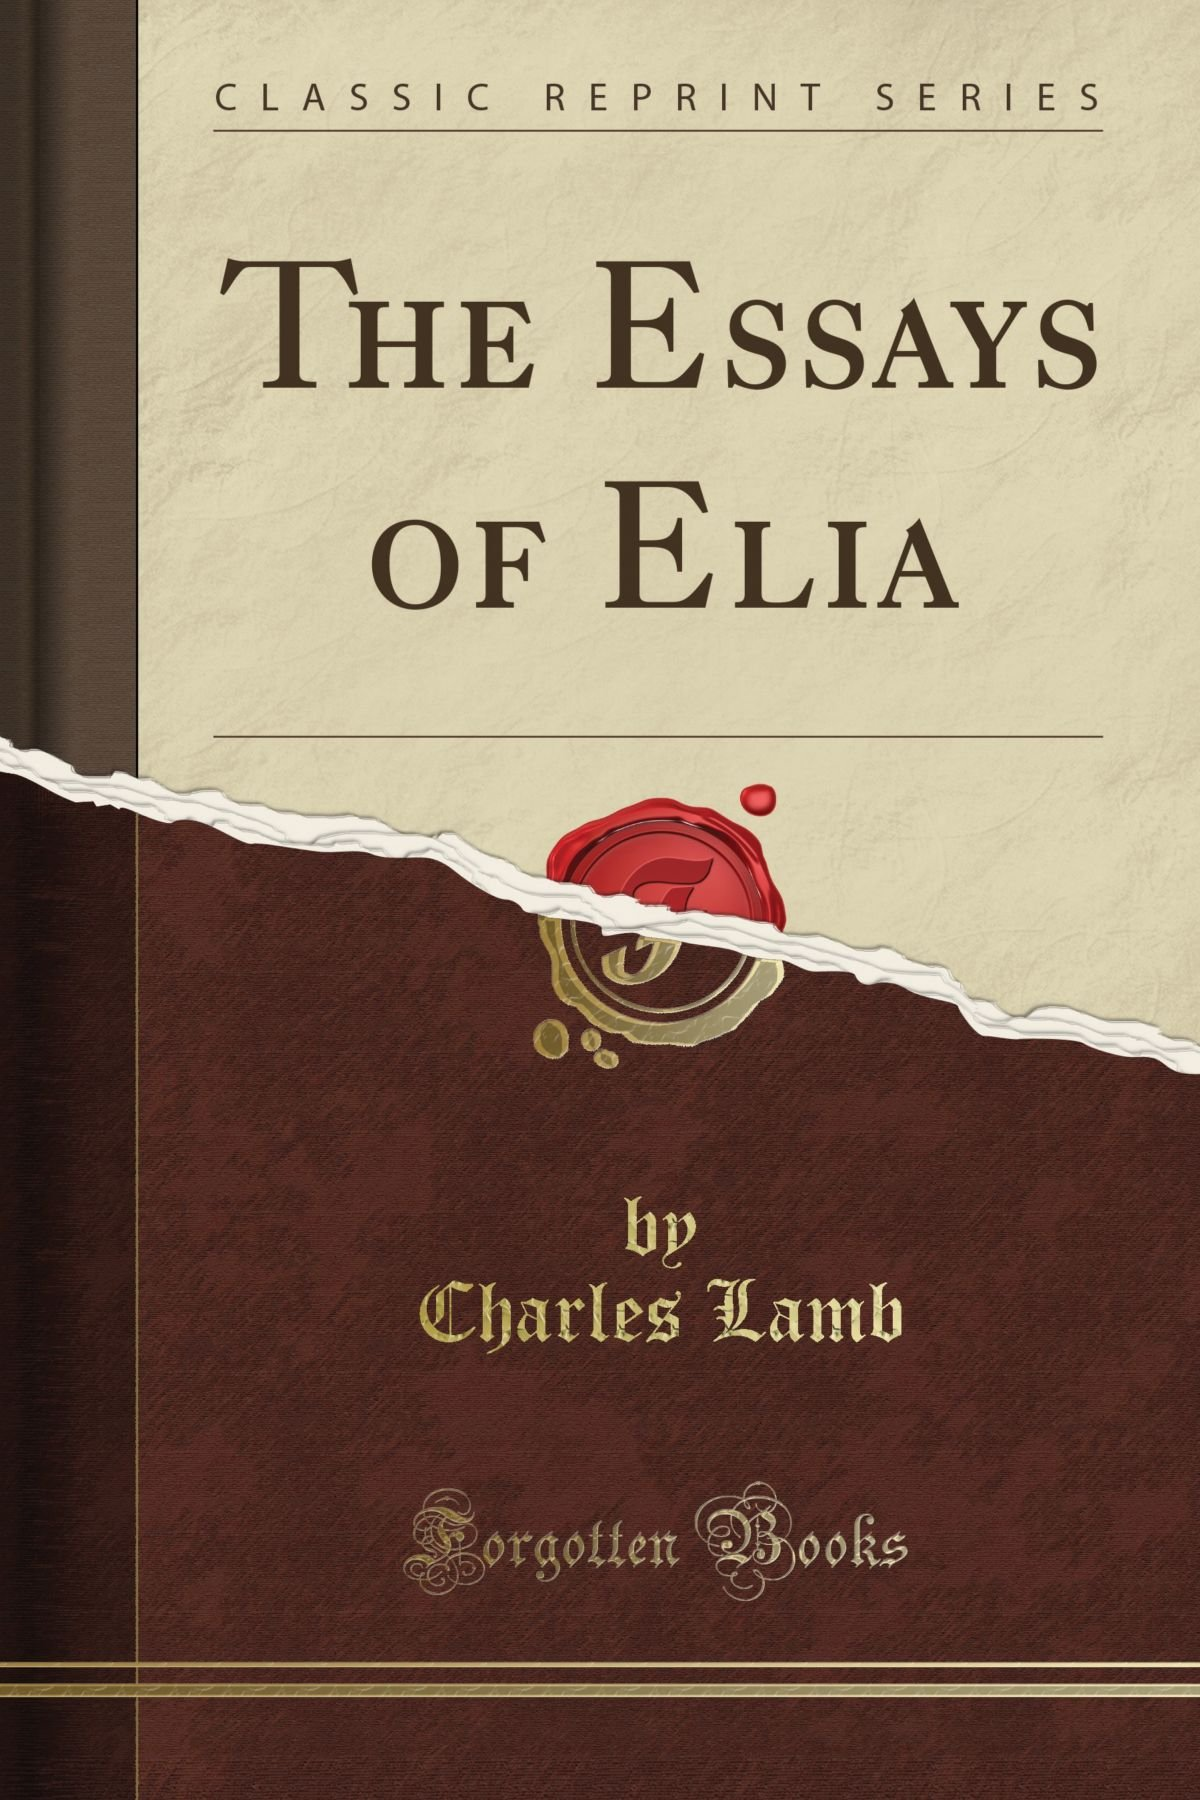 001 Essays Of Elia 811mpasxzwl Essay Striking Epub Summary Text Pdf Full